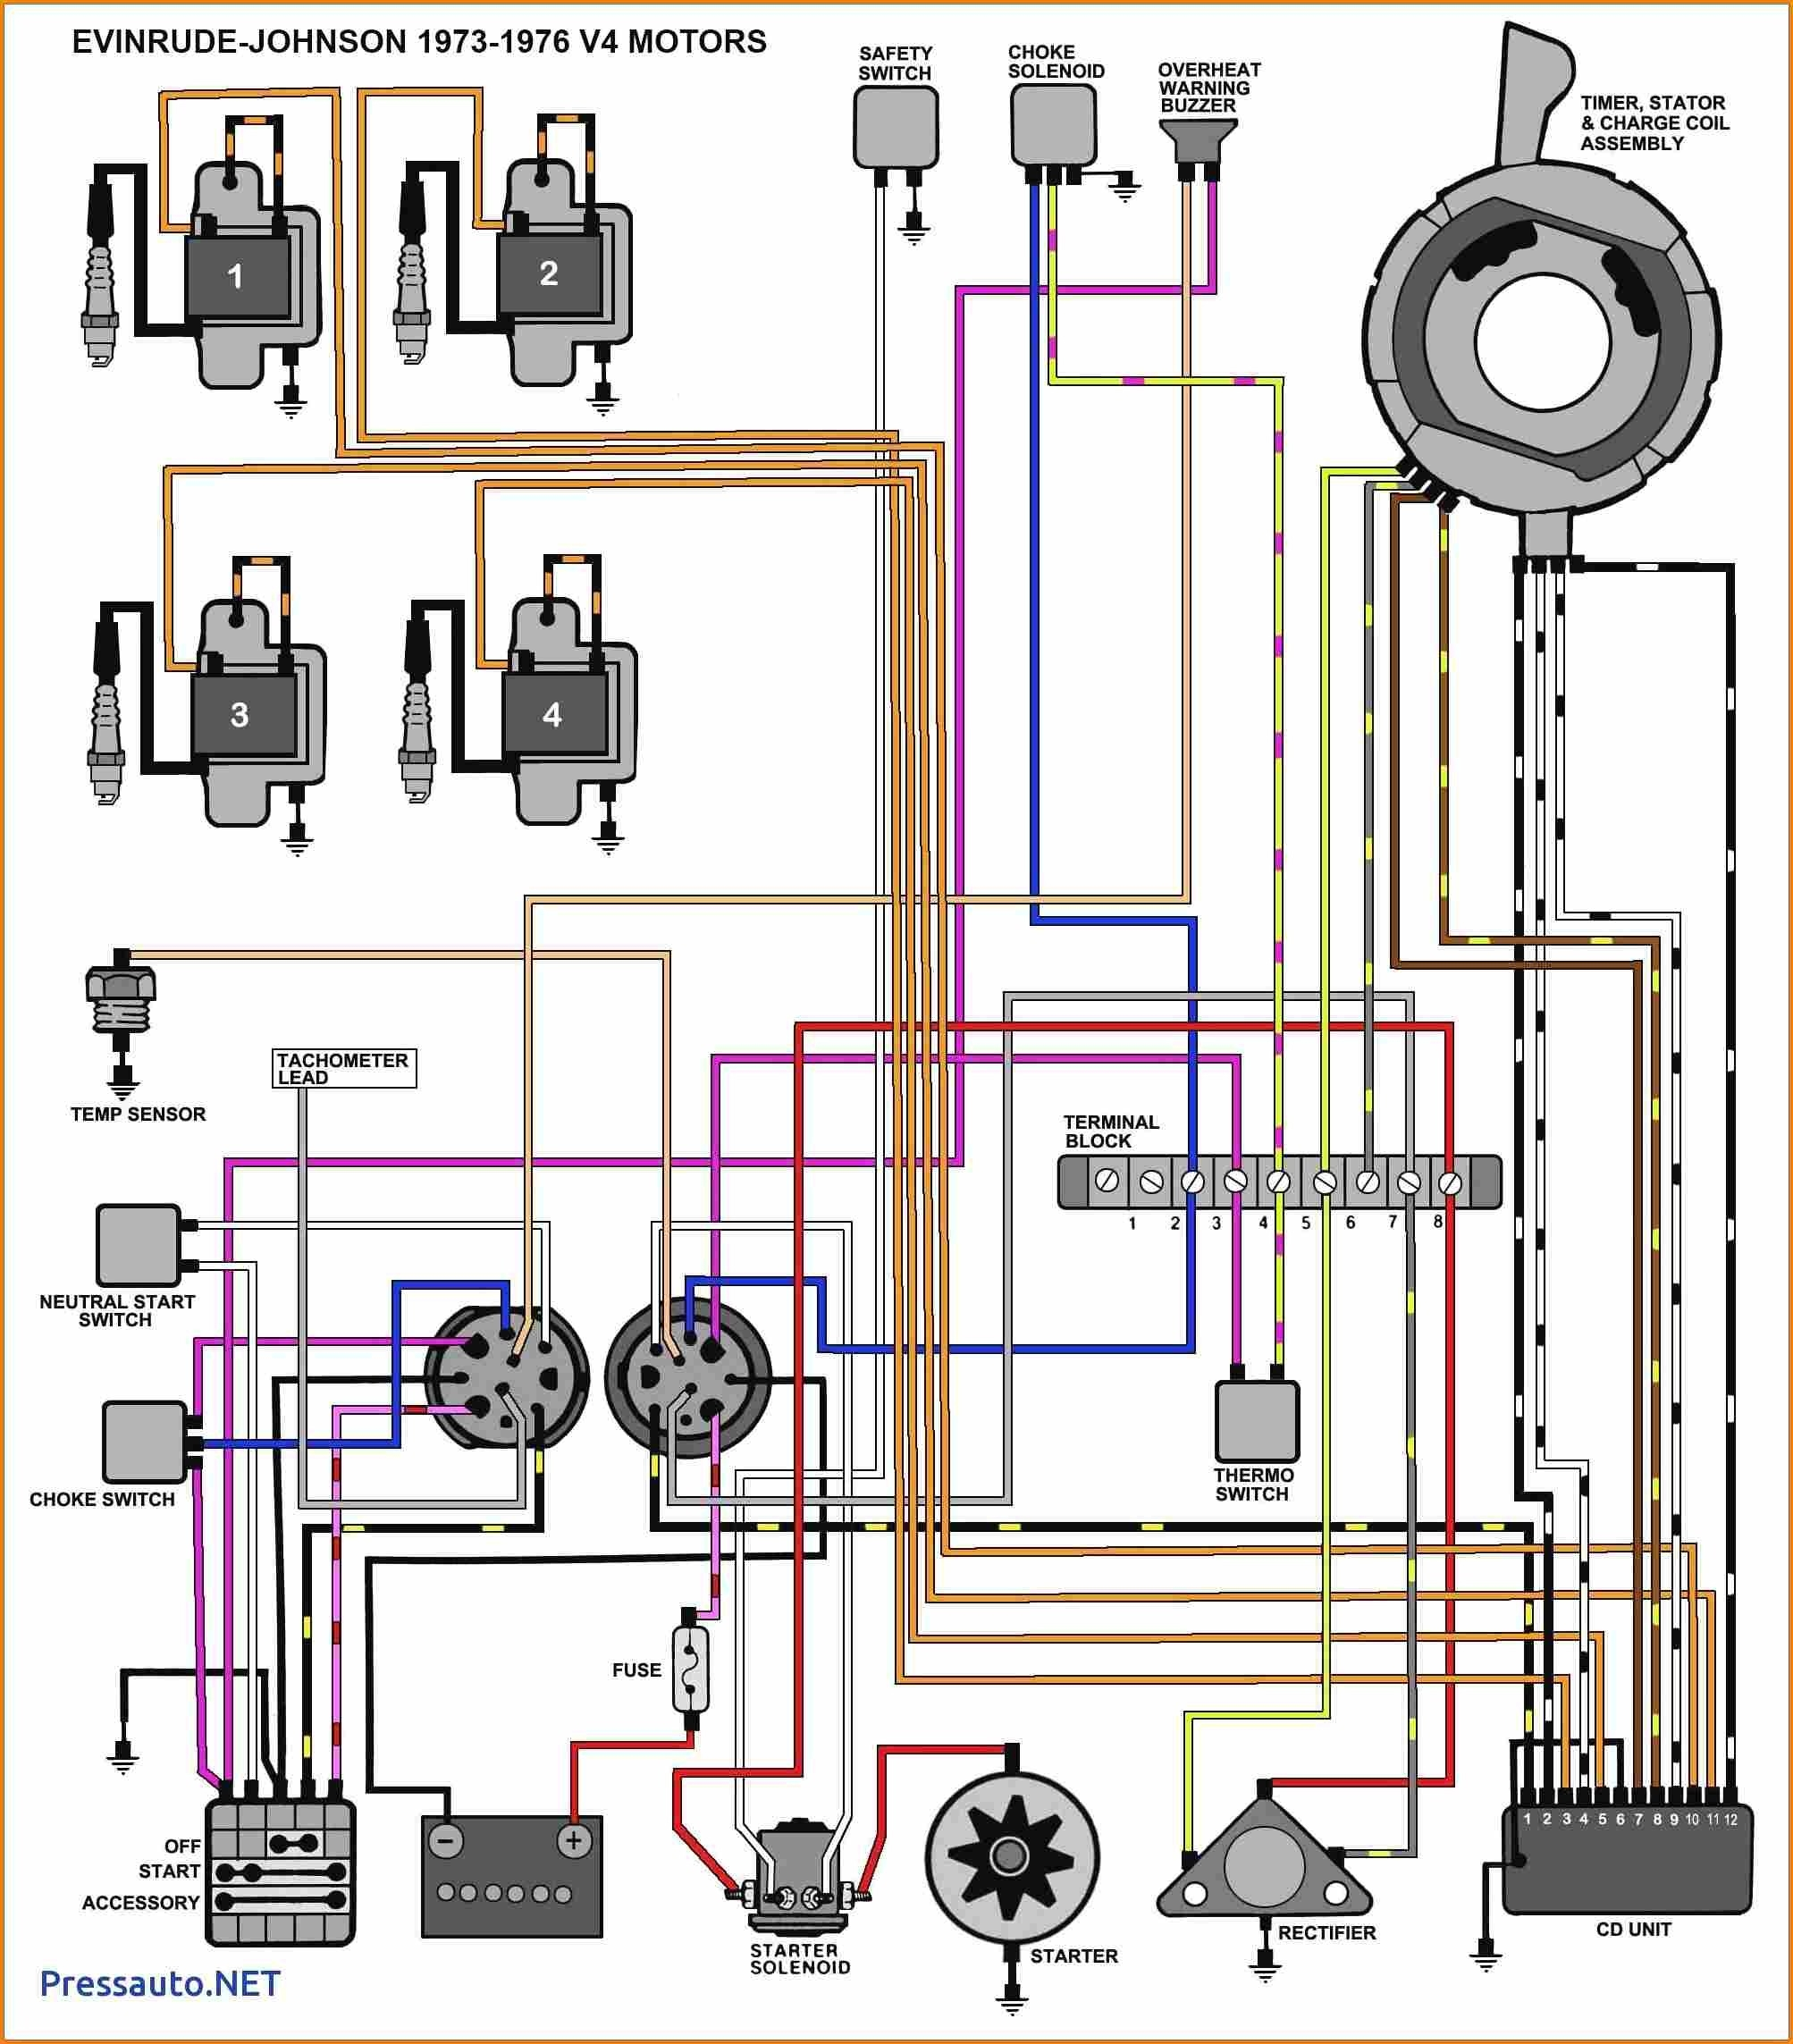 Lund Wiring Diagram - Tube Light Wiring Diagram -  fuses-boxs.kankubuktikan.jeanjaures37.fr | Voyager Boat Wiring Diagram |  | Wiring Diagram Resource